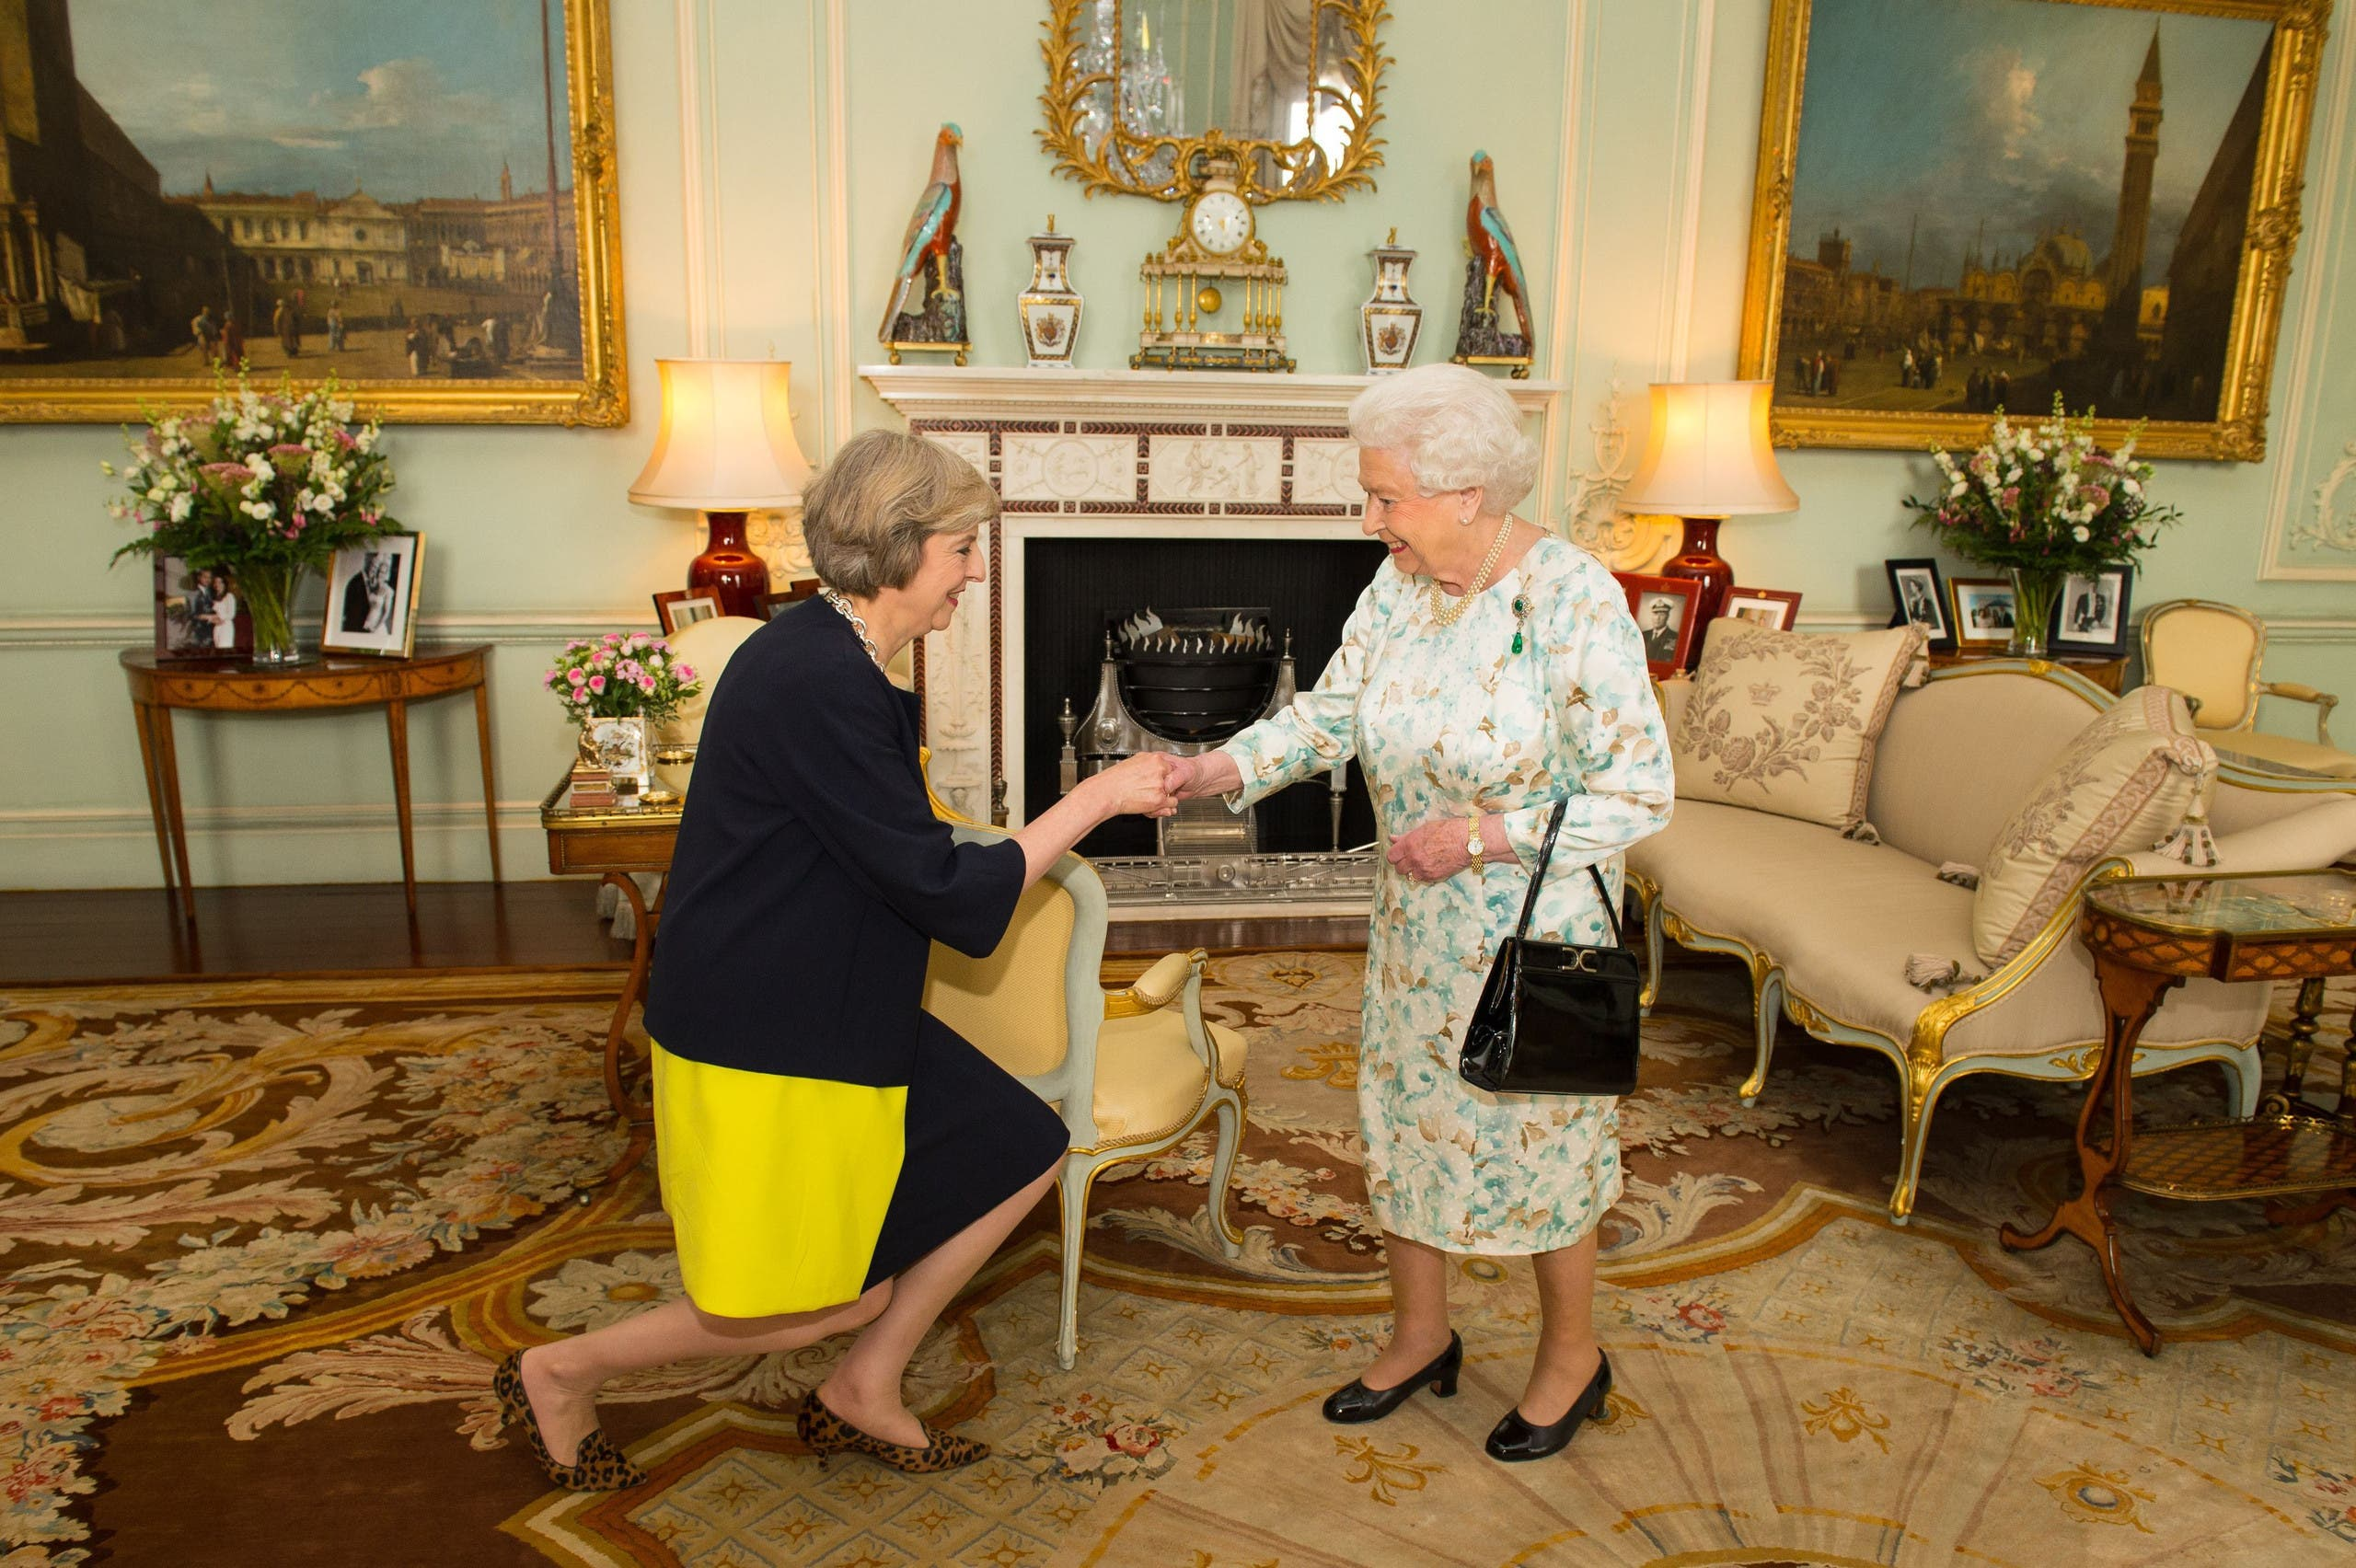 [Window Title] Save As  [Content] Queen Elizabeth II welcomes Theresa May, left, at the start of an audience in Buckingham Palace, London, where she invited the former Home Secretary to become Prime Minister and form a new government, Wednesday July 13, 2016. (AP) The file name is not valid.  [OK]